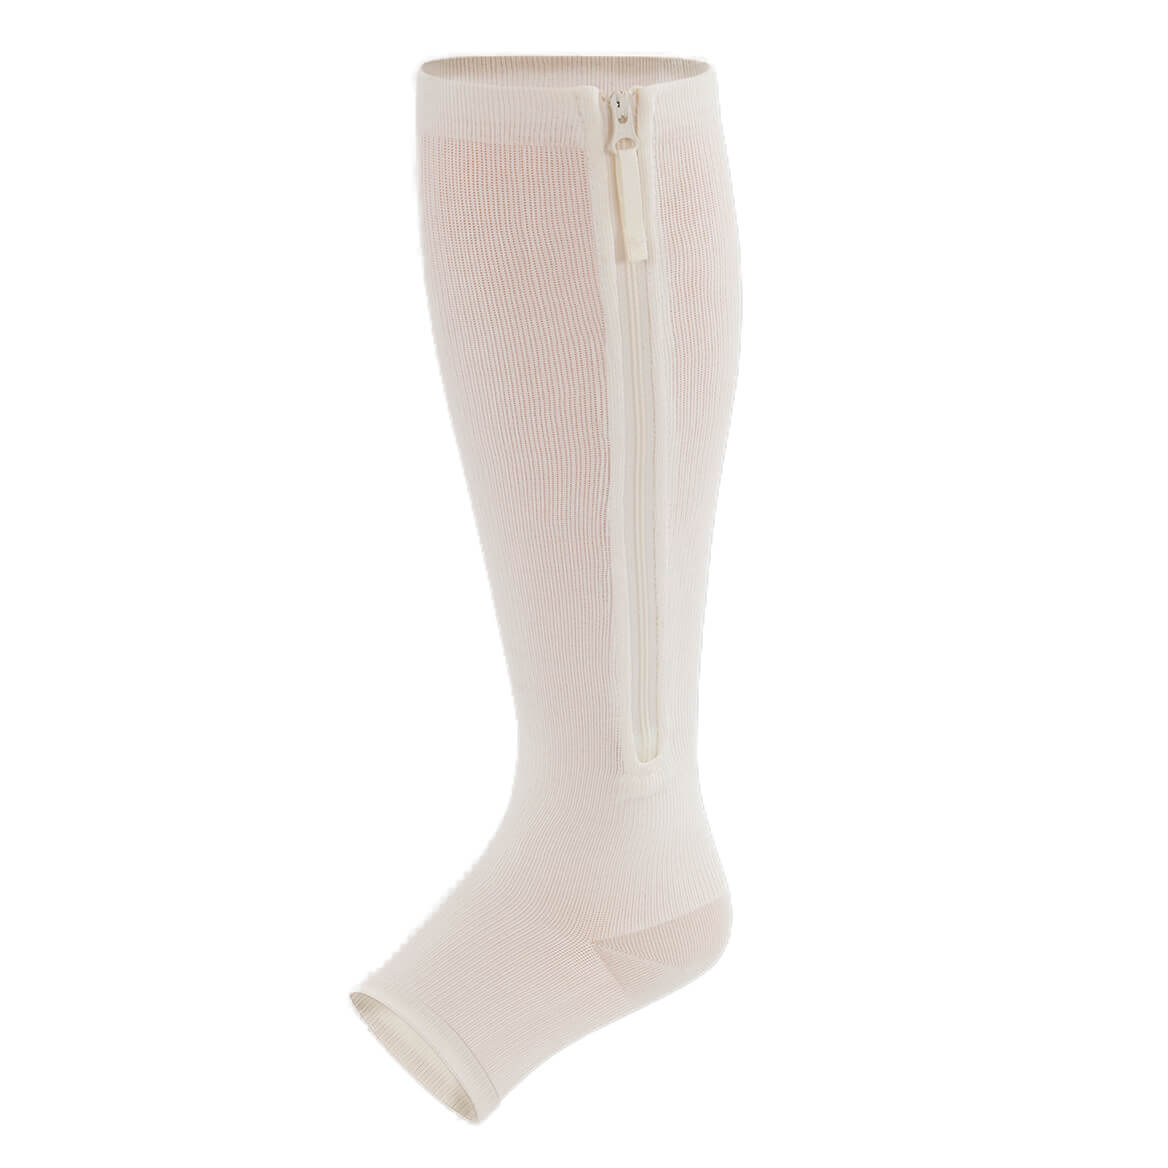 Silver Zip-Up Compression Stockings-370133